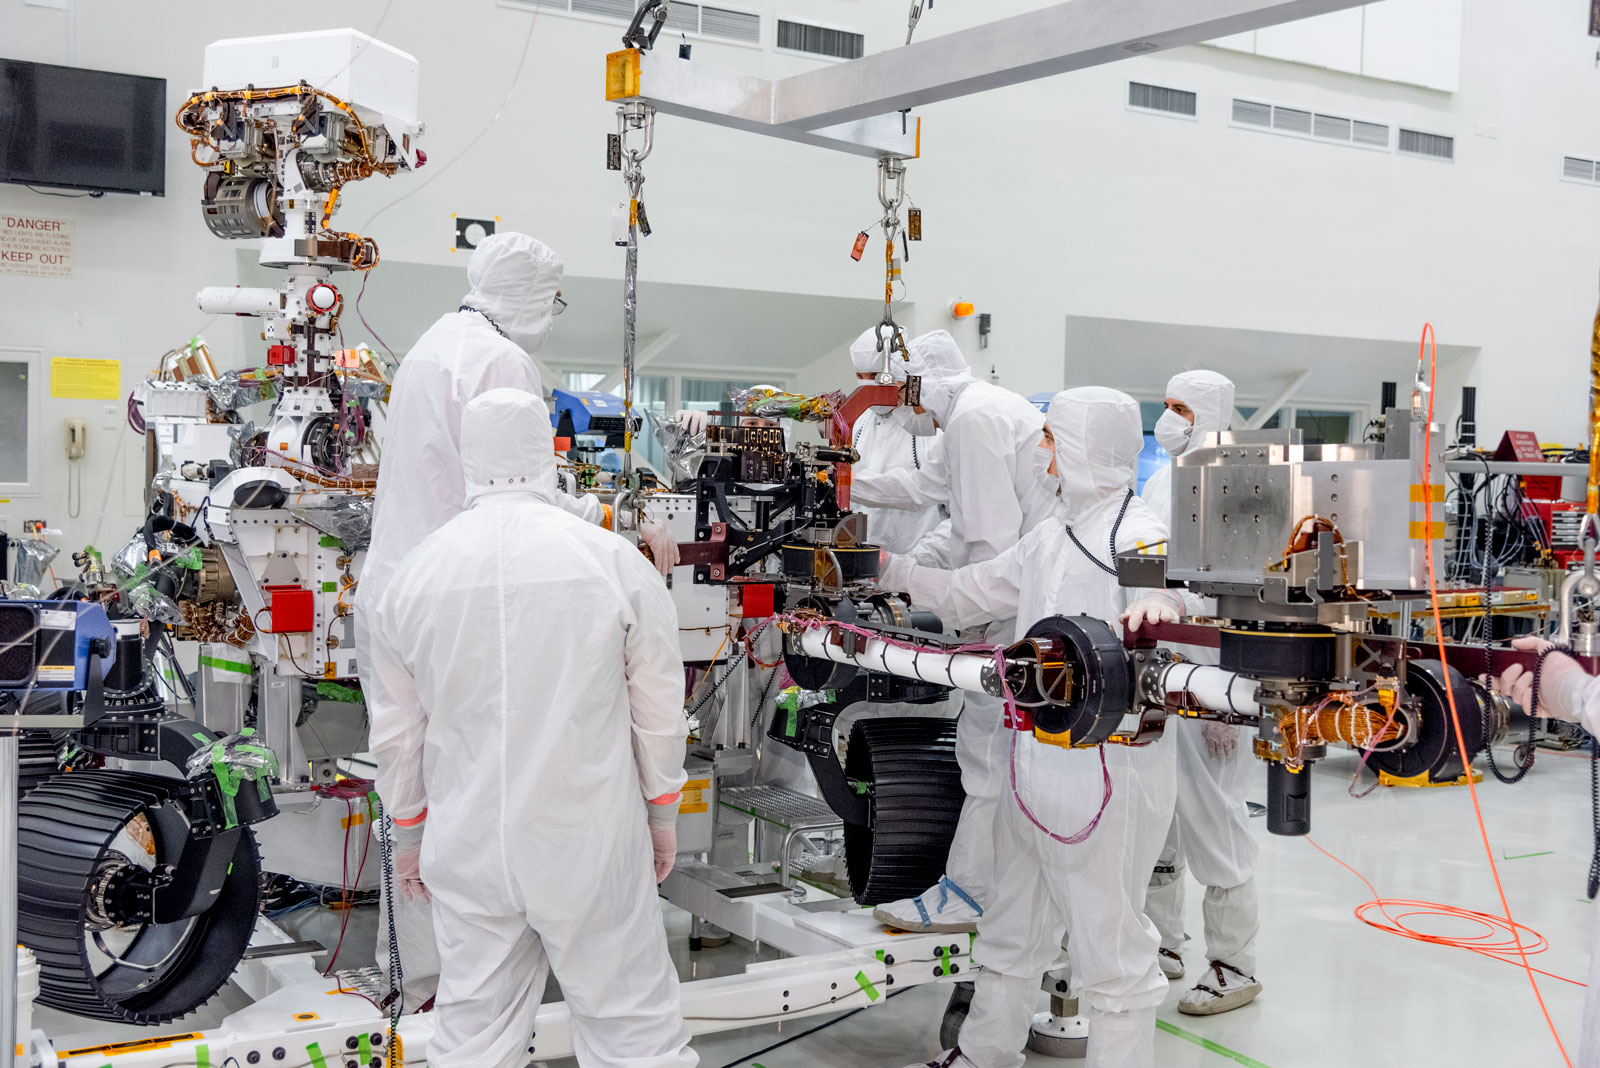 On June 21, 2019, engineers at NASA's Jet Propulsion Laboratory install the main robotic arm on the Mars 2020 rover.